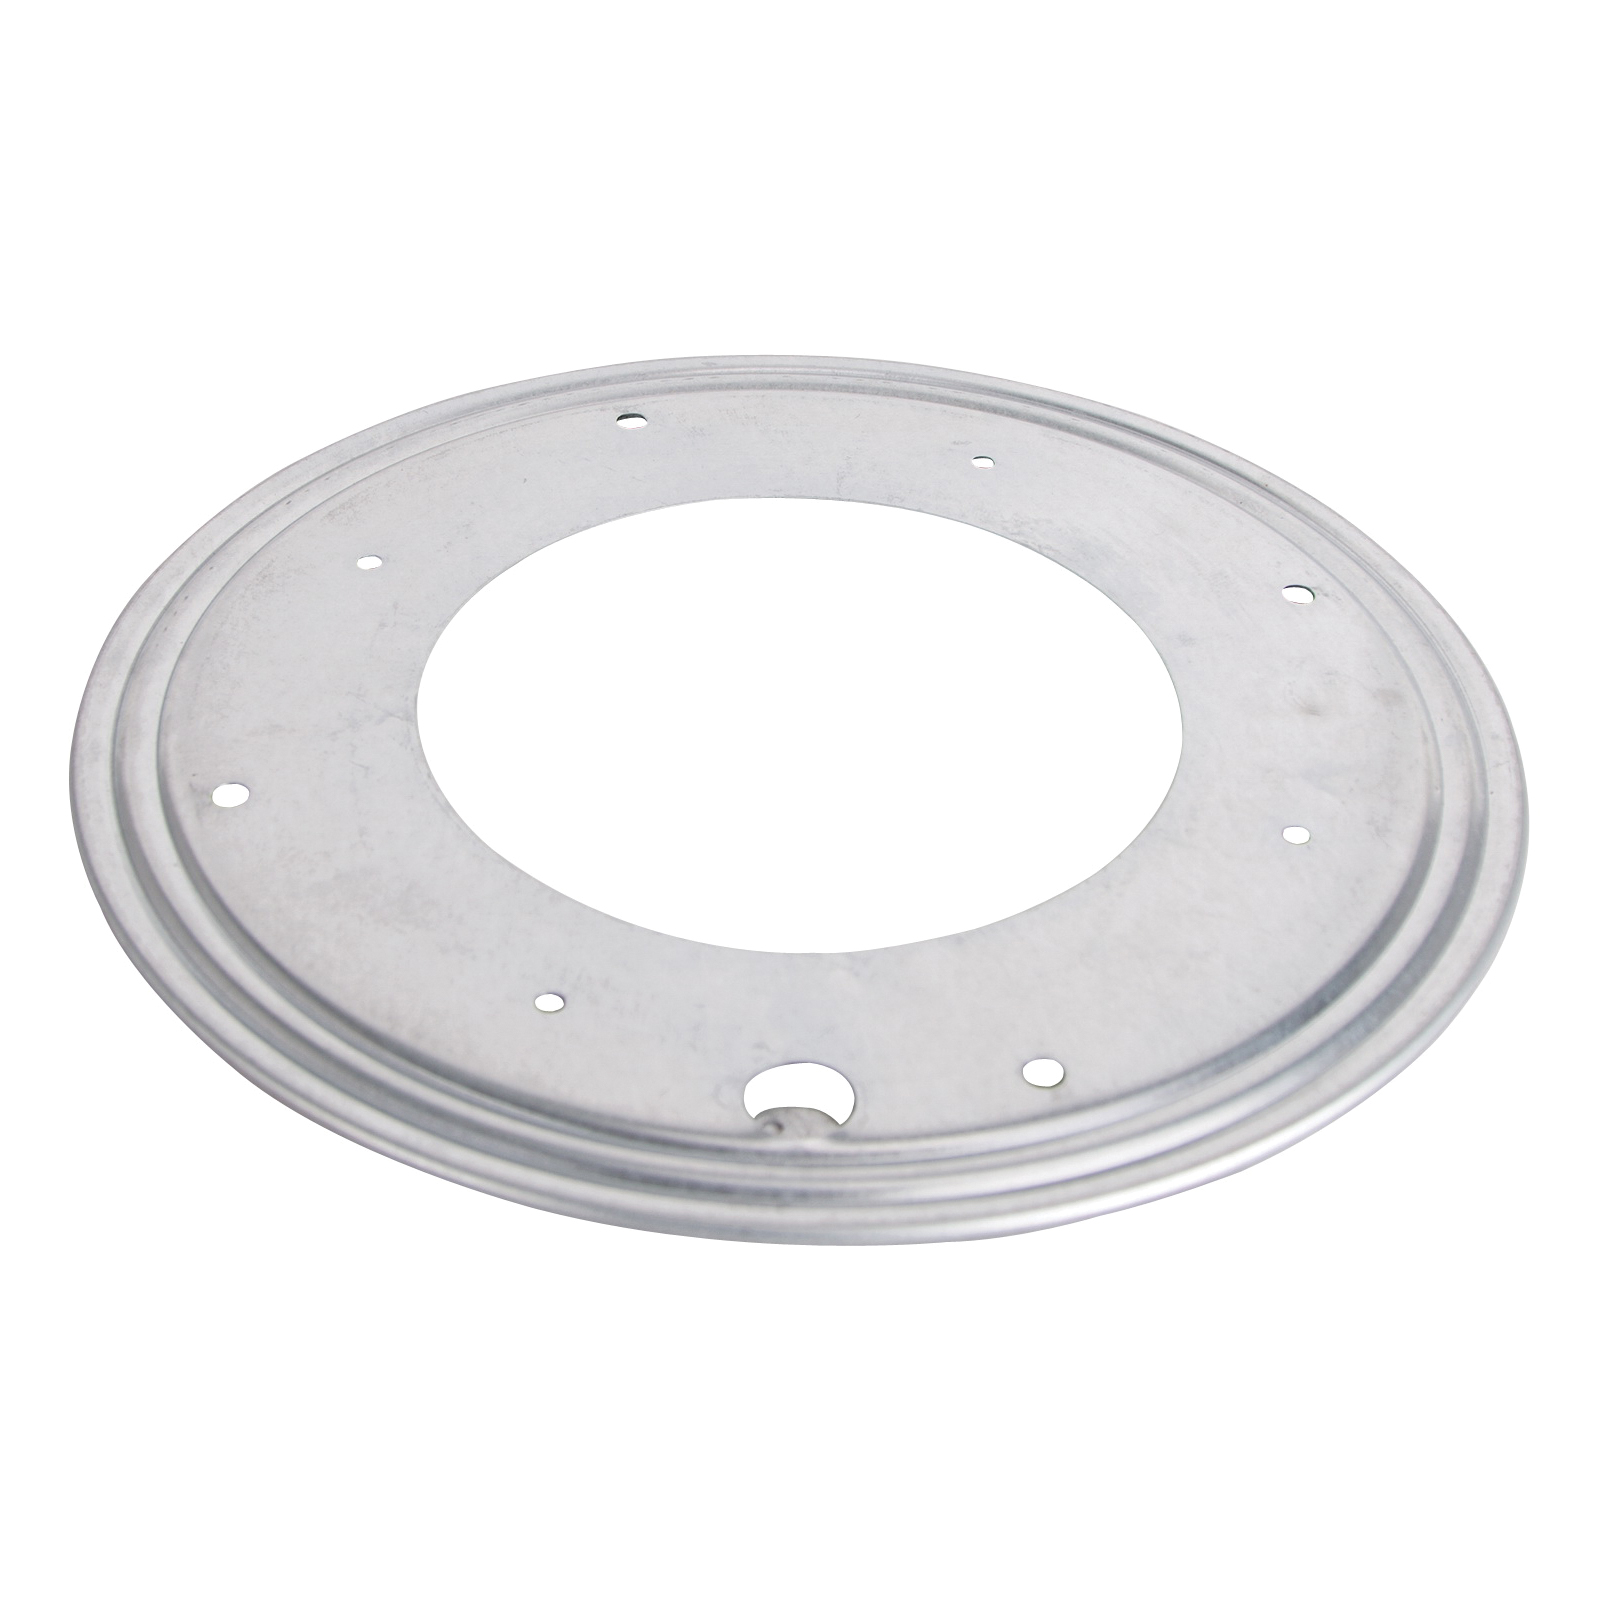 Picture of ProSource JC-L03-PS Lazy Susan Turntable, 12 in Dia, Zinc